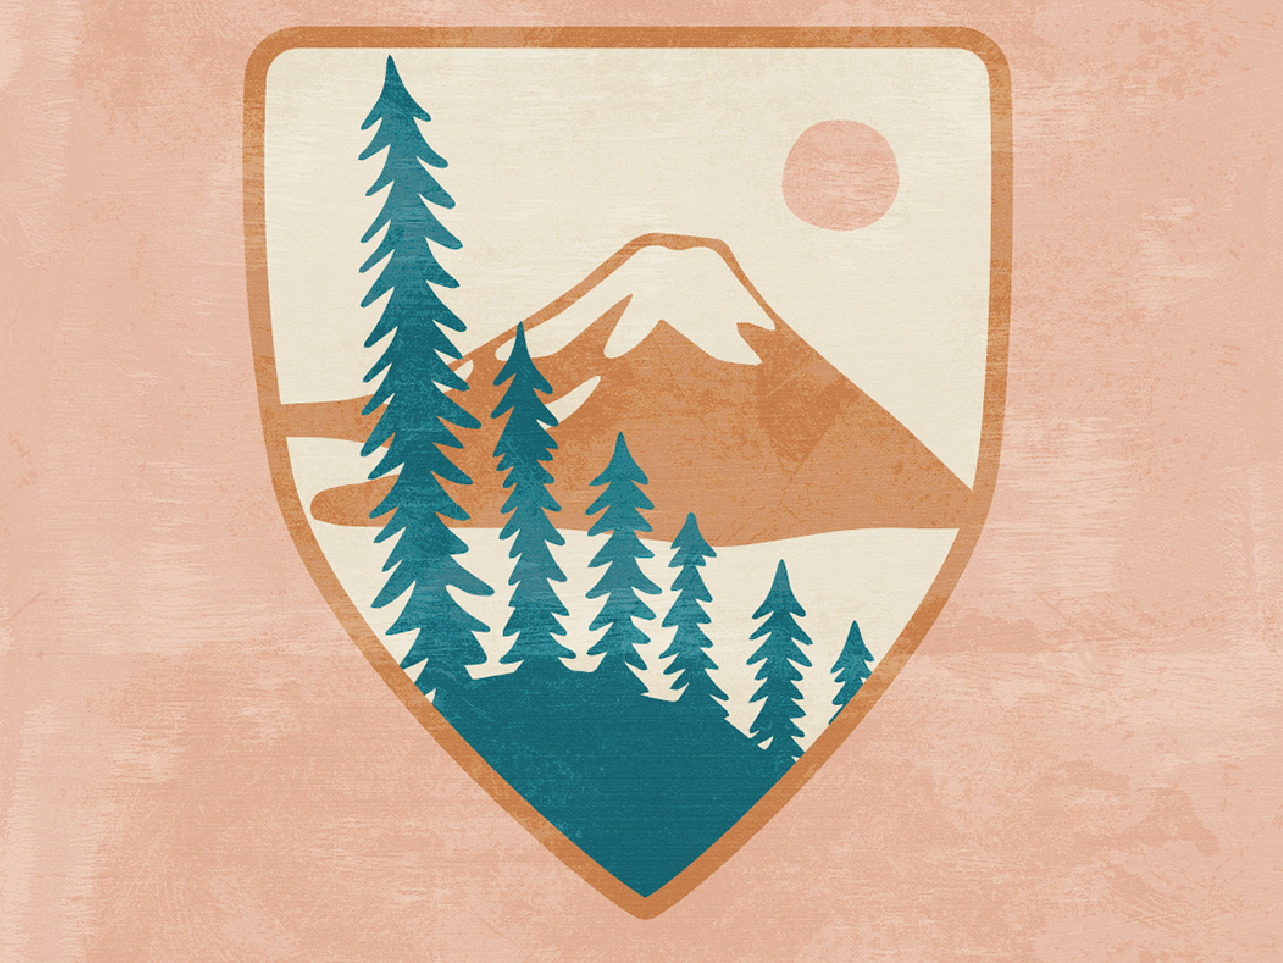 Crater Lake Patch outdoors nature illustration hiking mountains national parks shield badge patch crater lake